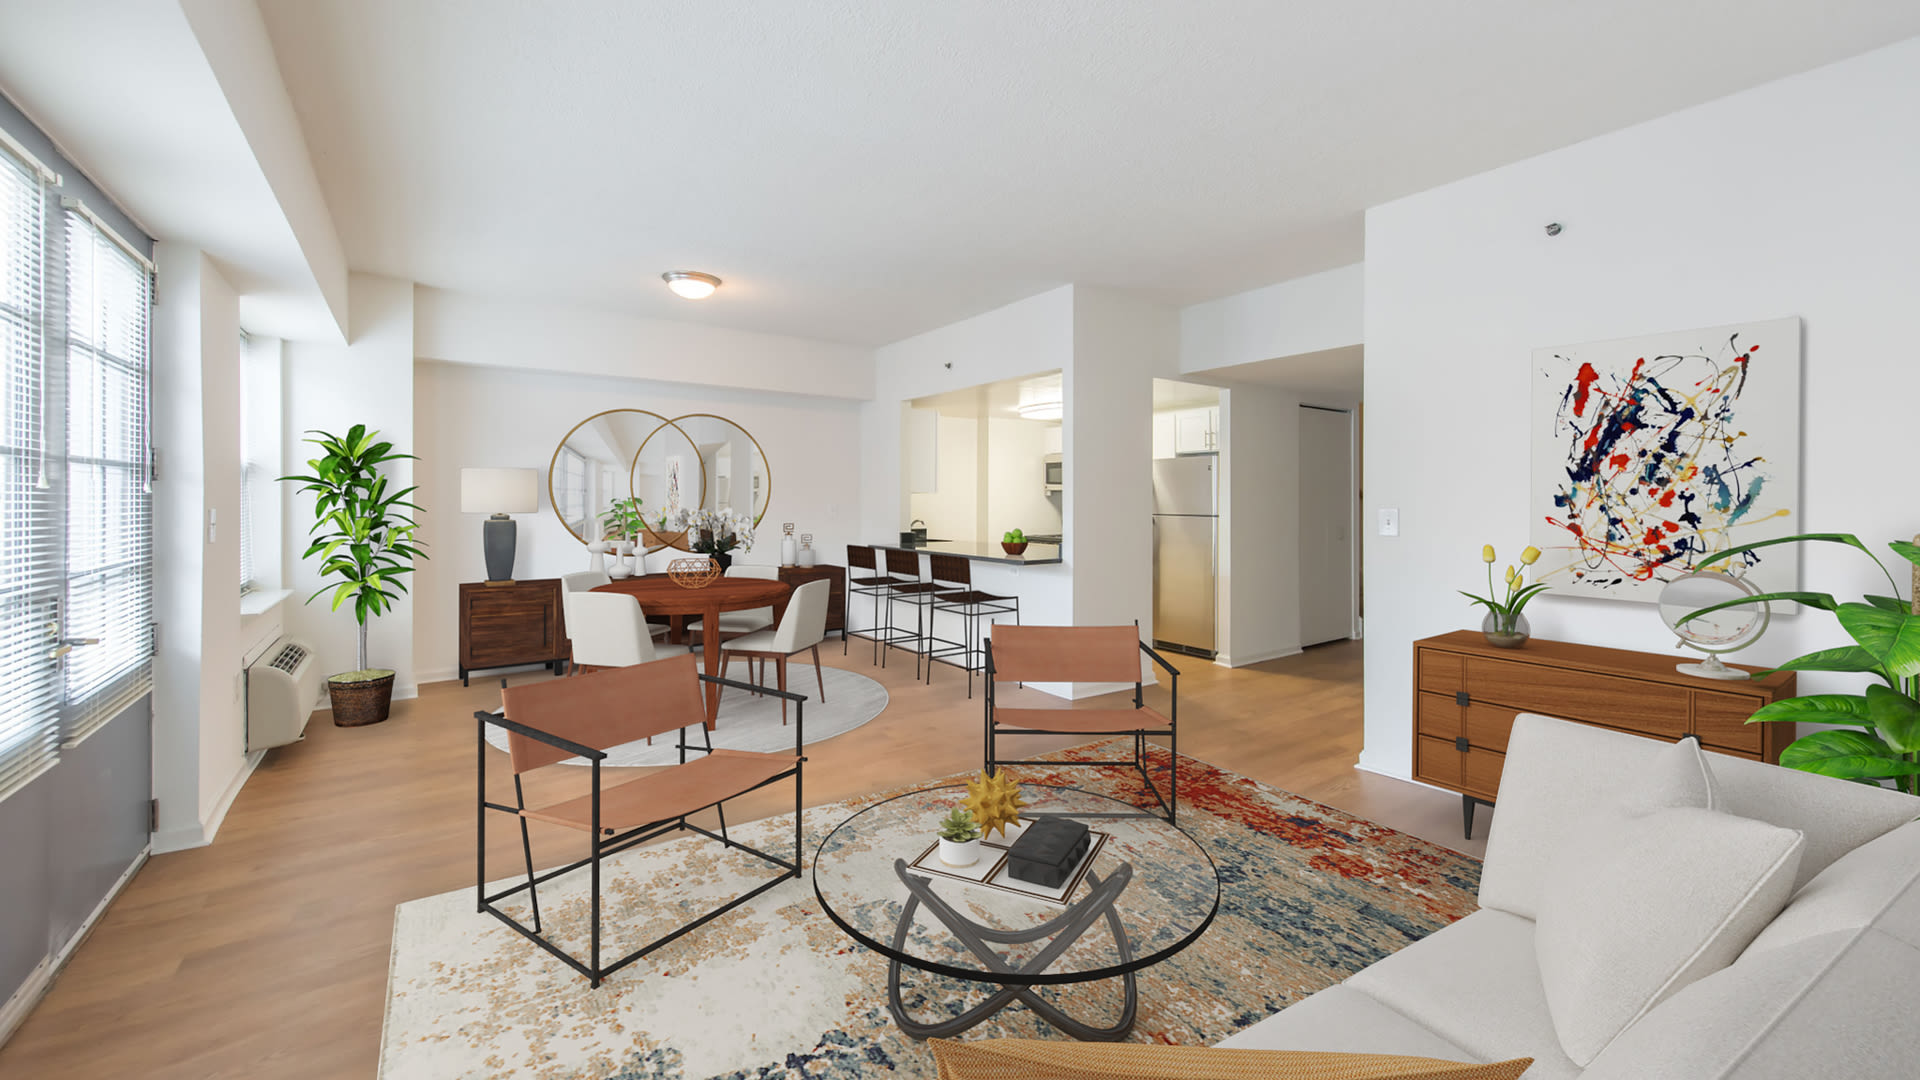 77 Park Avenue Apartments - Living and Dining Room with Hard Surface Flooring